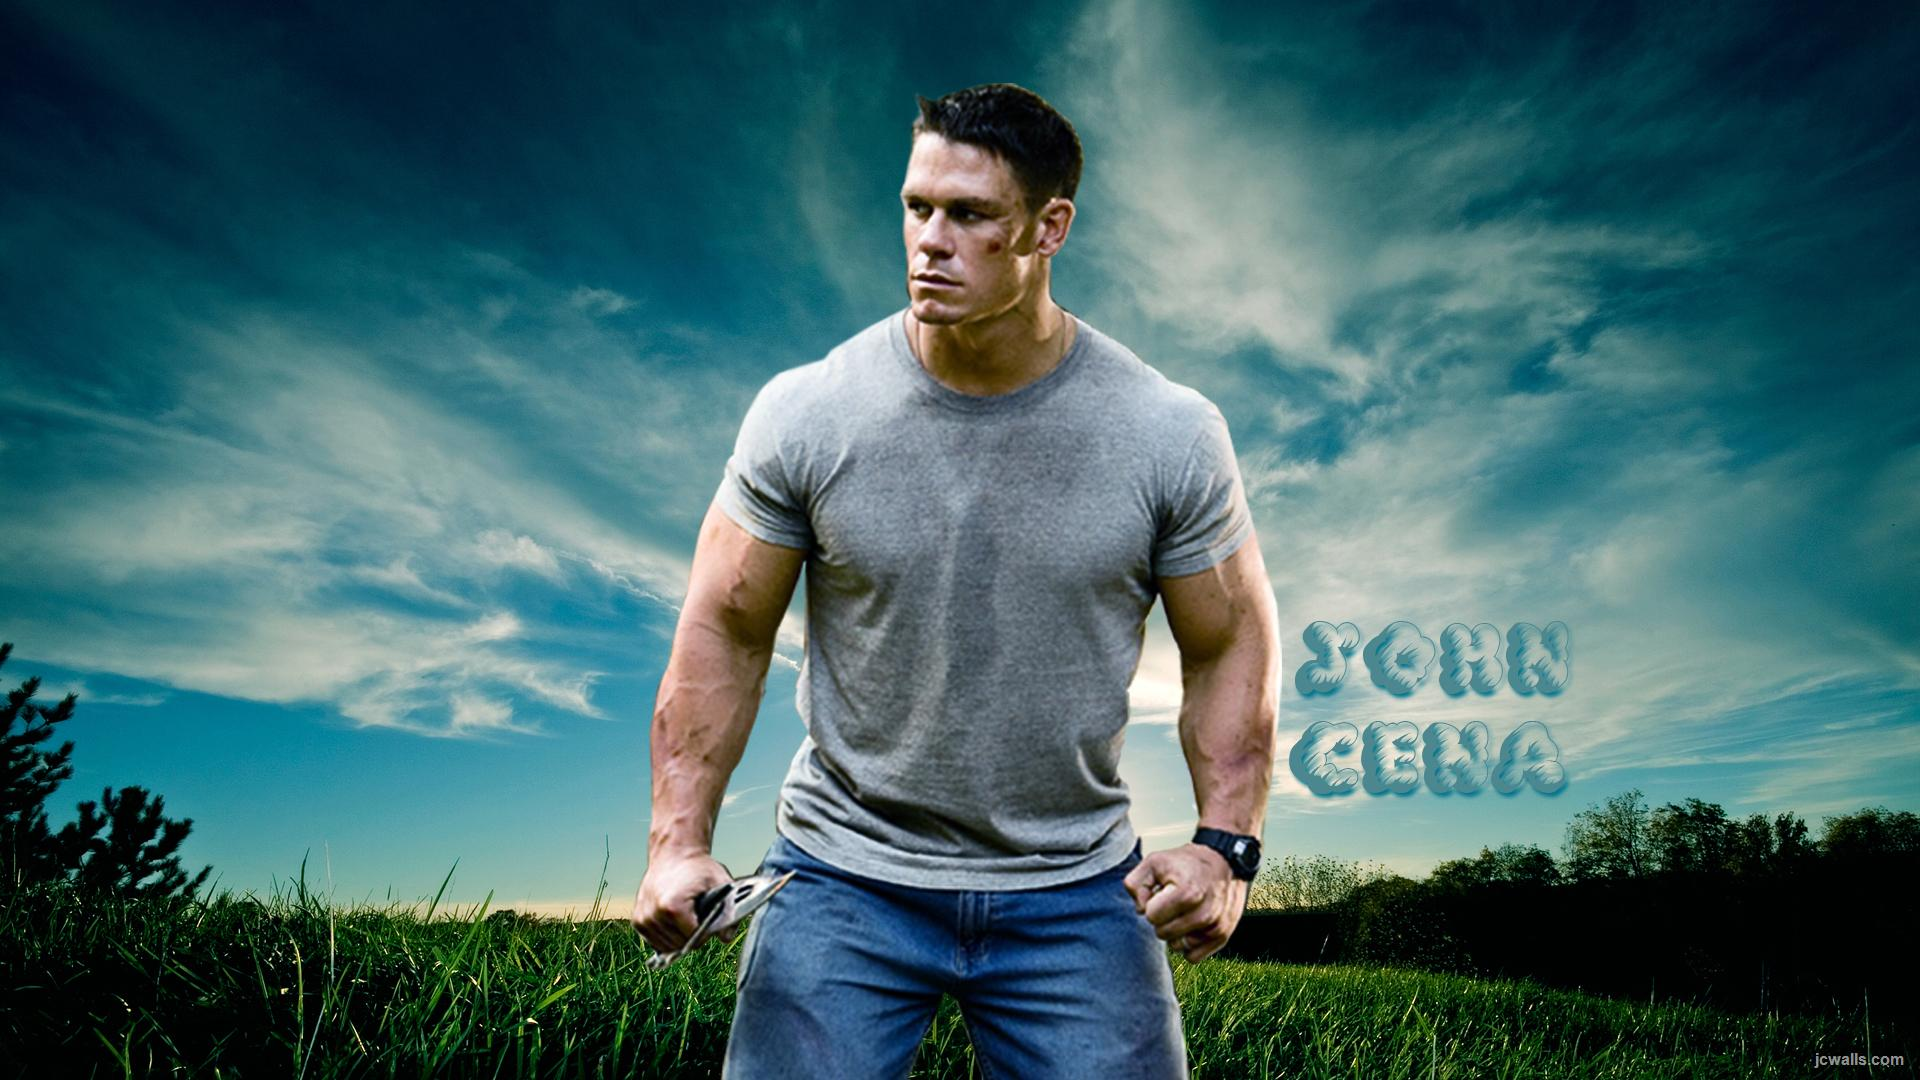 john cena wallpaper t shirt